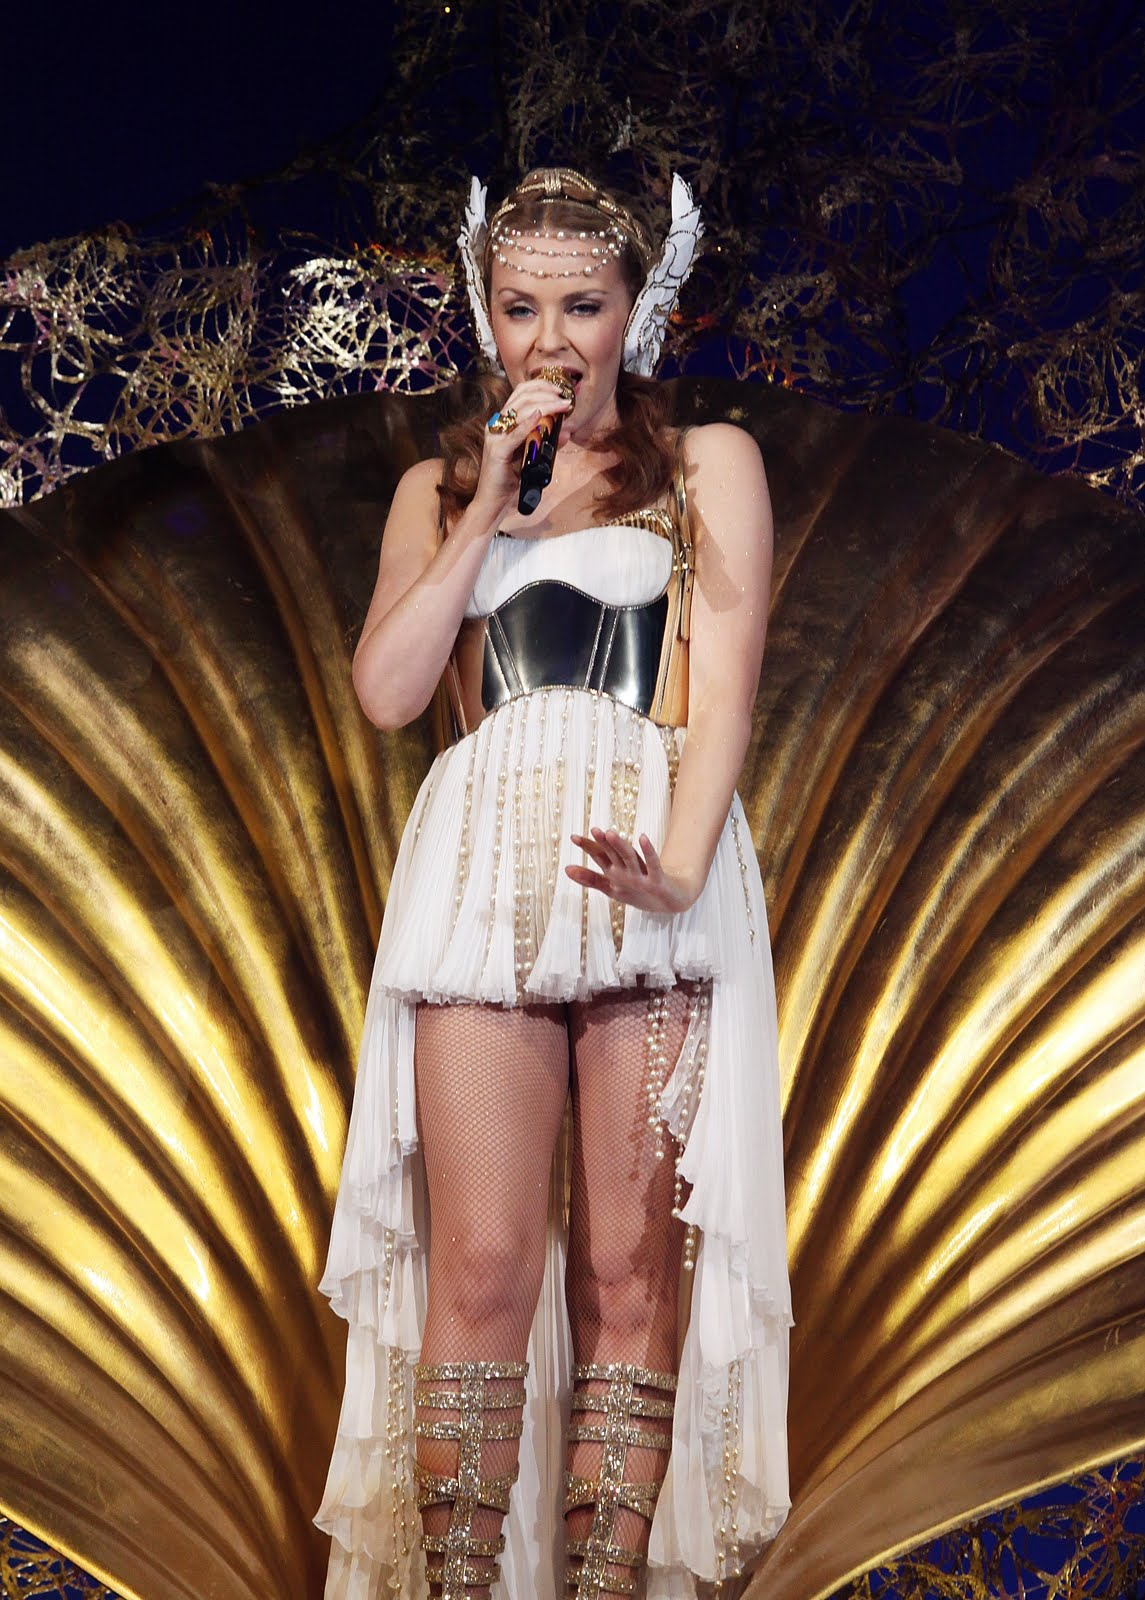 Kylie Minogue Looking Hot In White Sexy Outfit 13 Pics